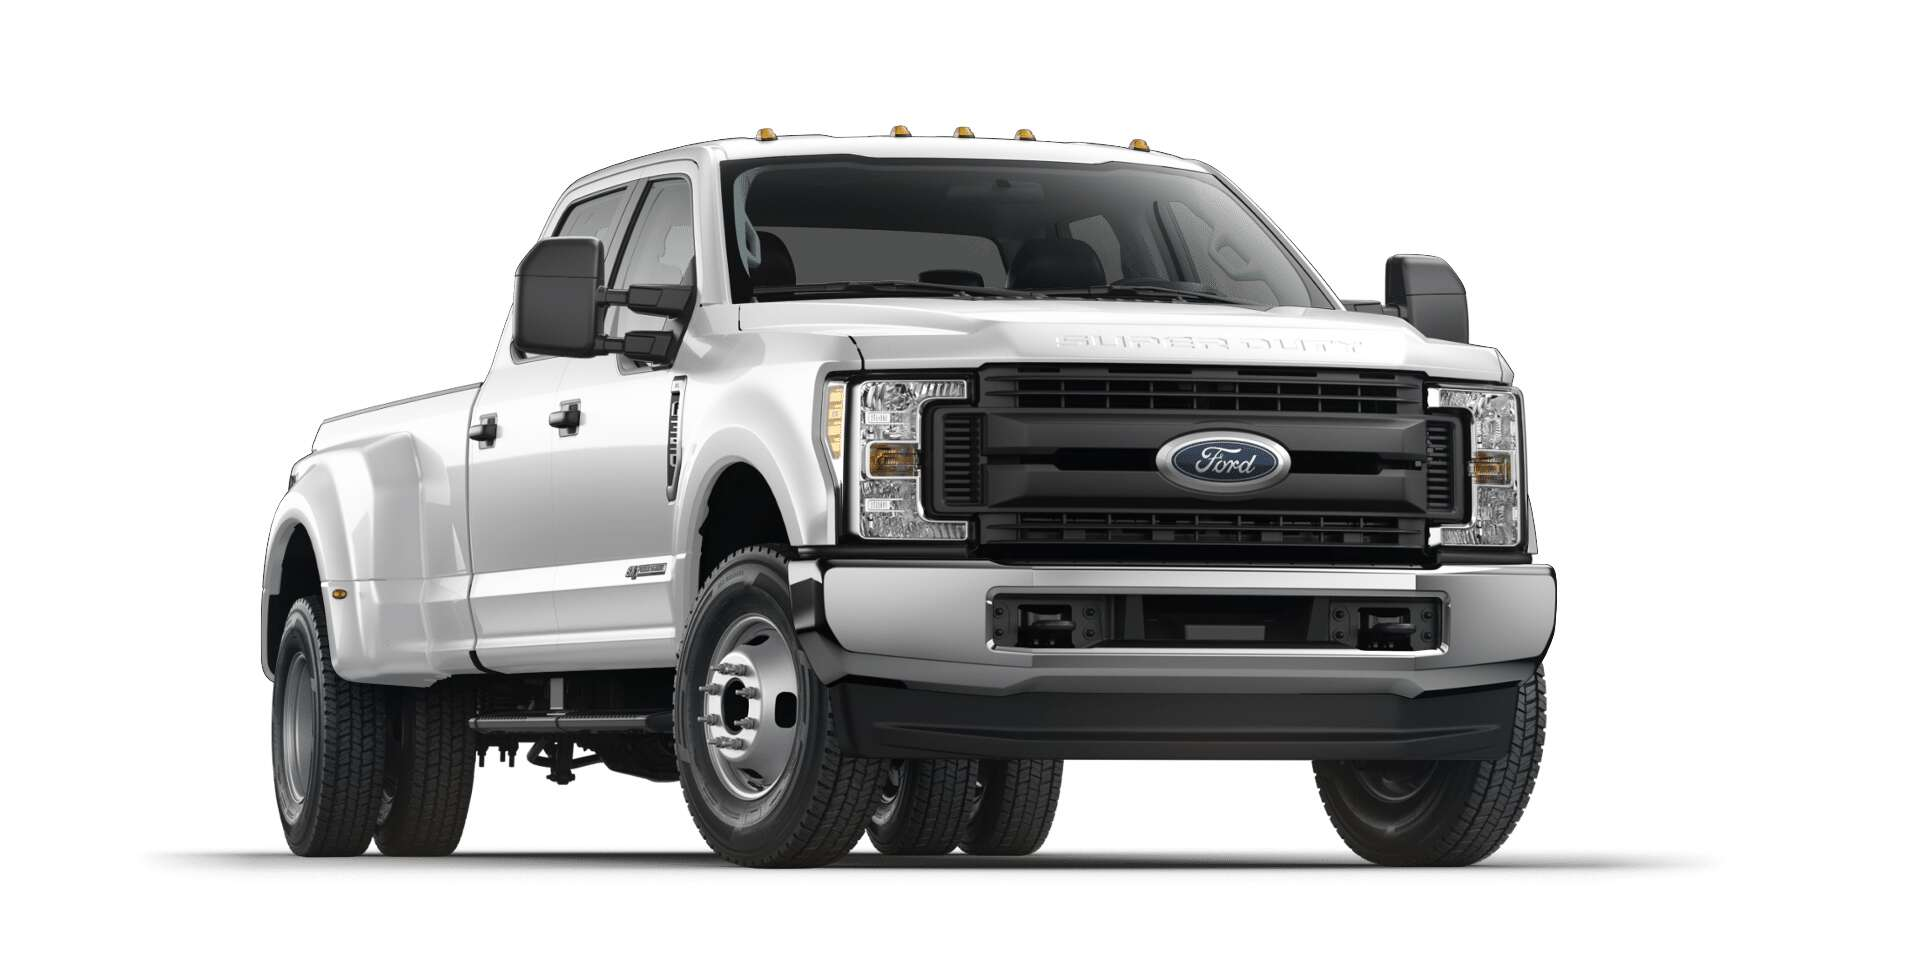 news hybrid electric hybrids h to xl plug duty with fitted pickups truck ford march pickup start in super powertrain upfitted adds f production